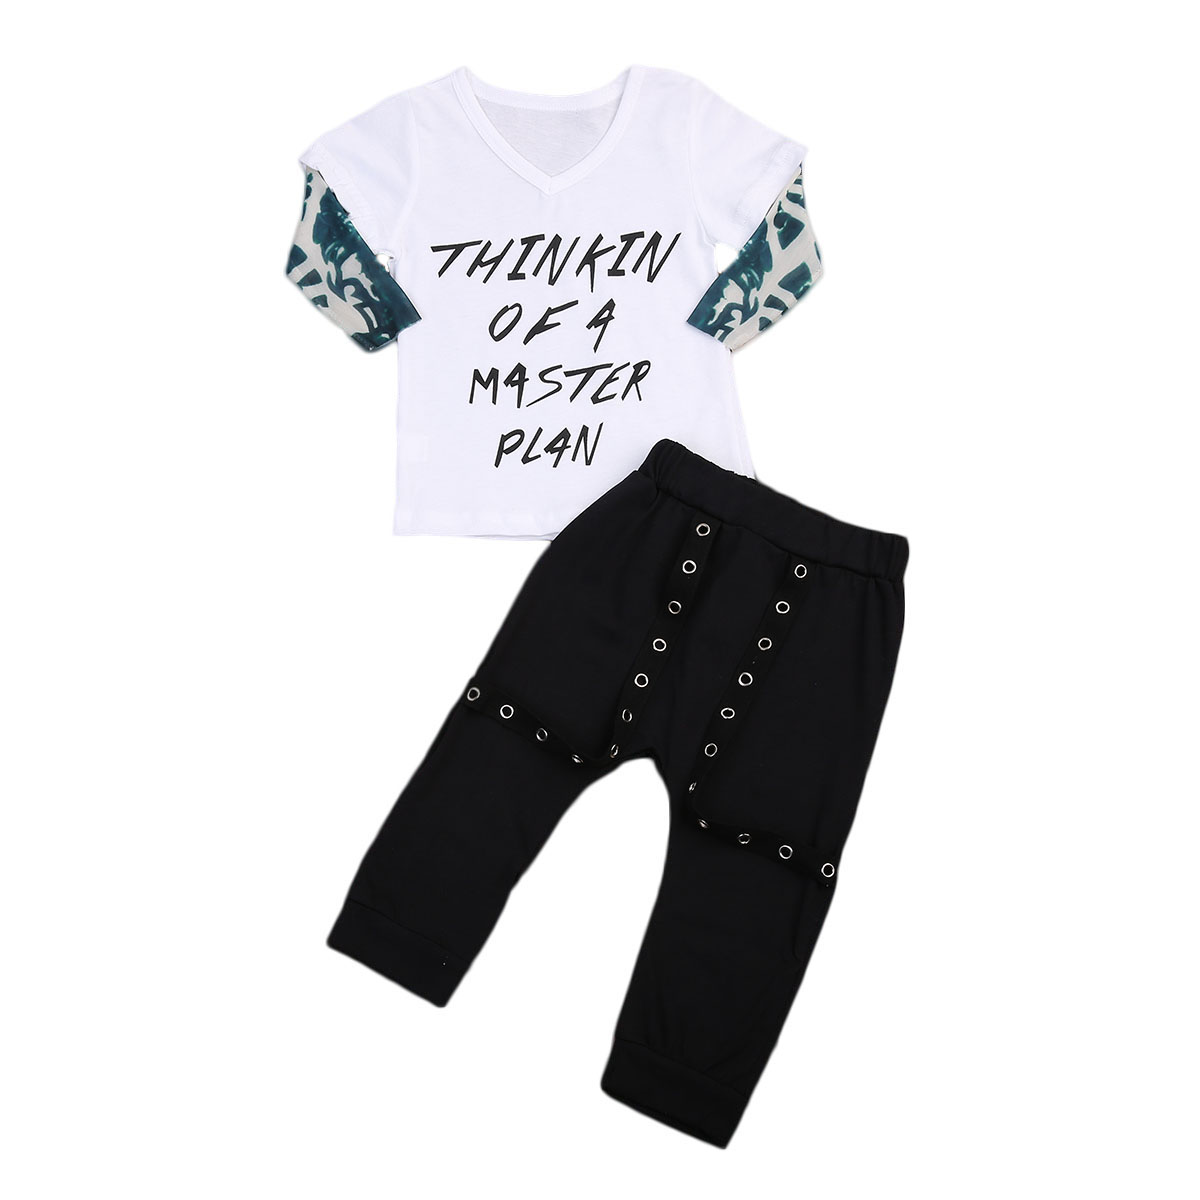 2018 Thinkin Cool Letters Boy Newborn Infant Baby T-shirt Tops+Pants Leggings Outfit Set